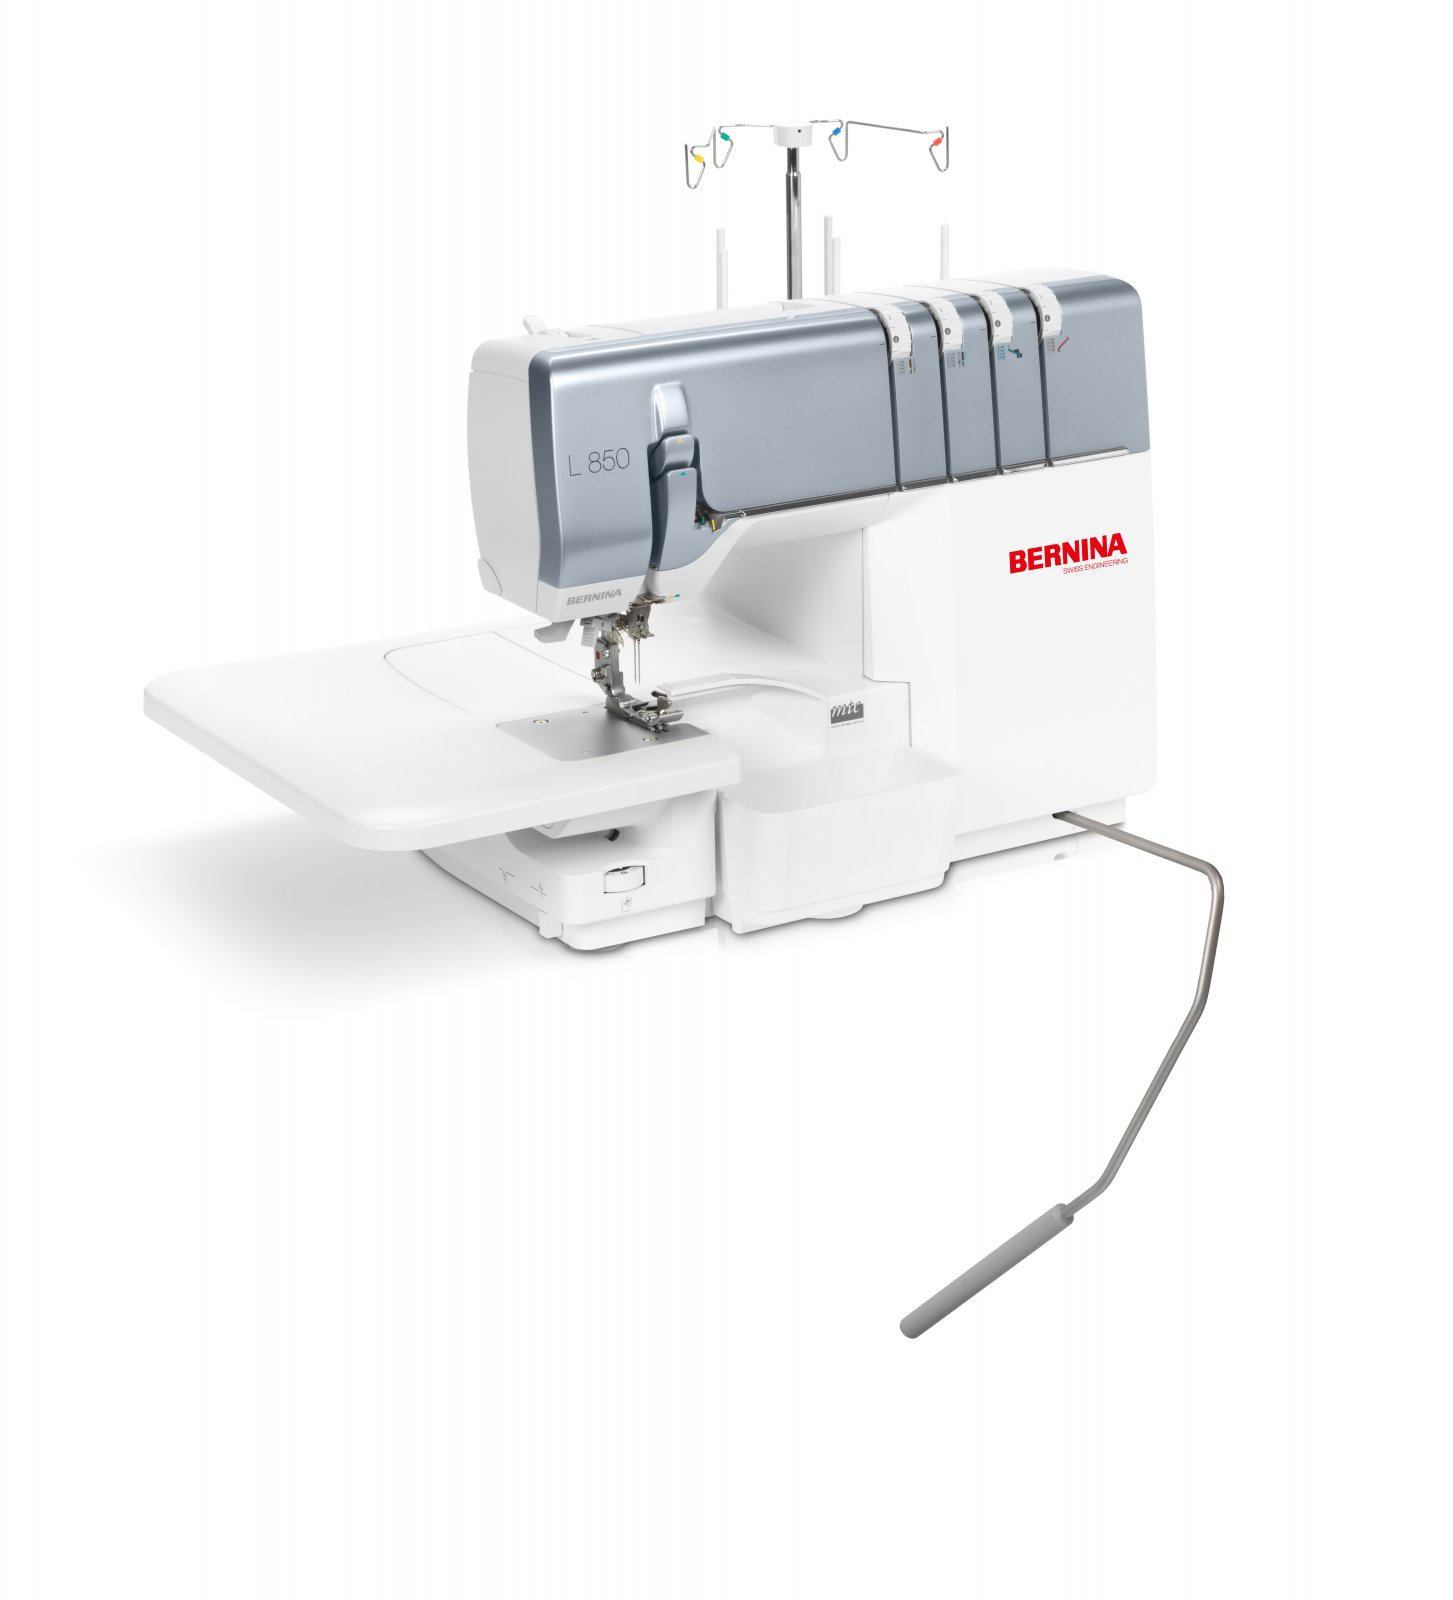 BERNINA L 850 Overlocker Serger